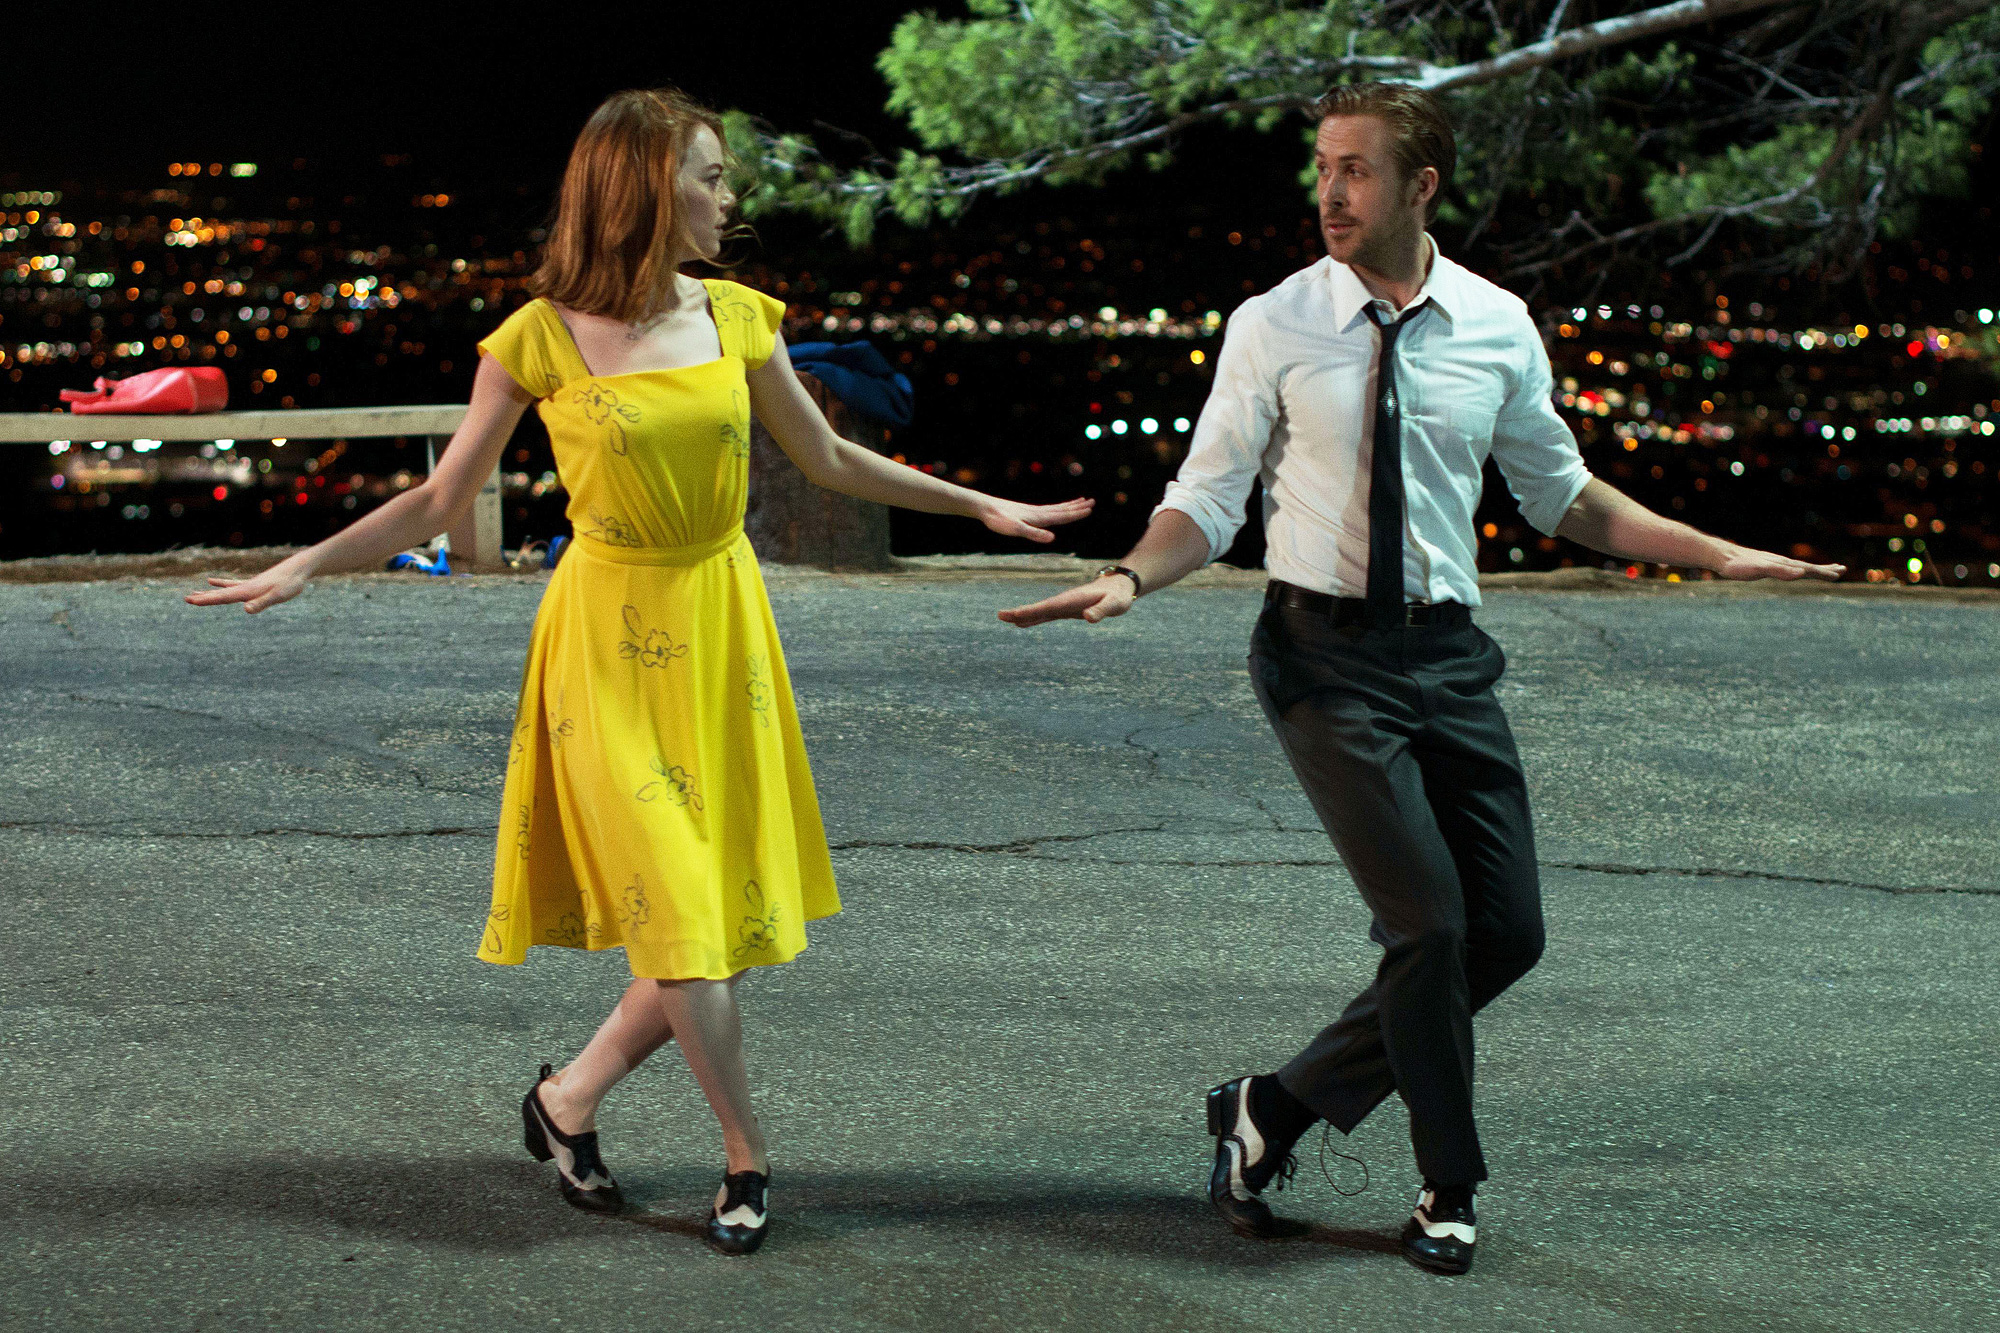 La La Land,  what are you doing here?